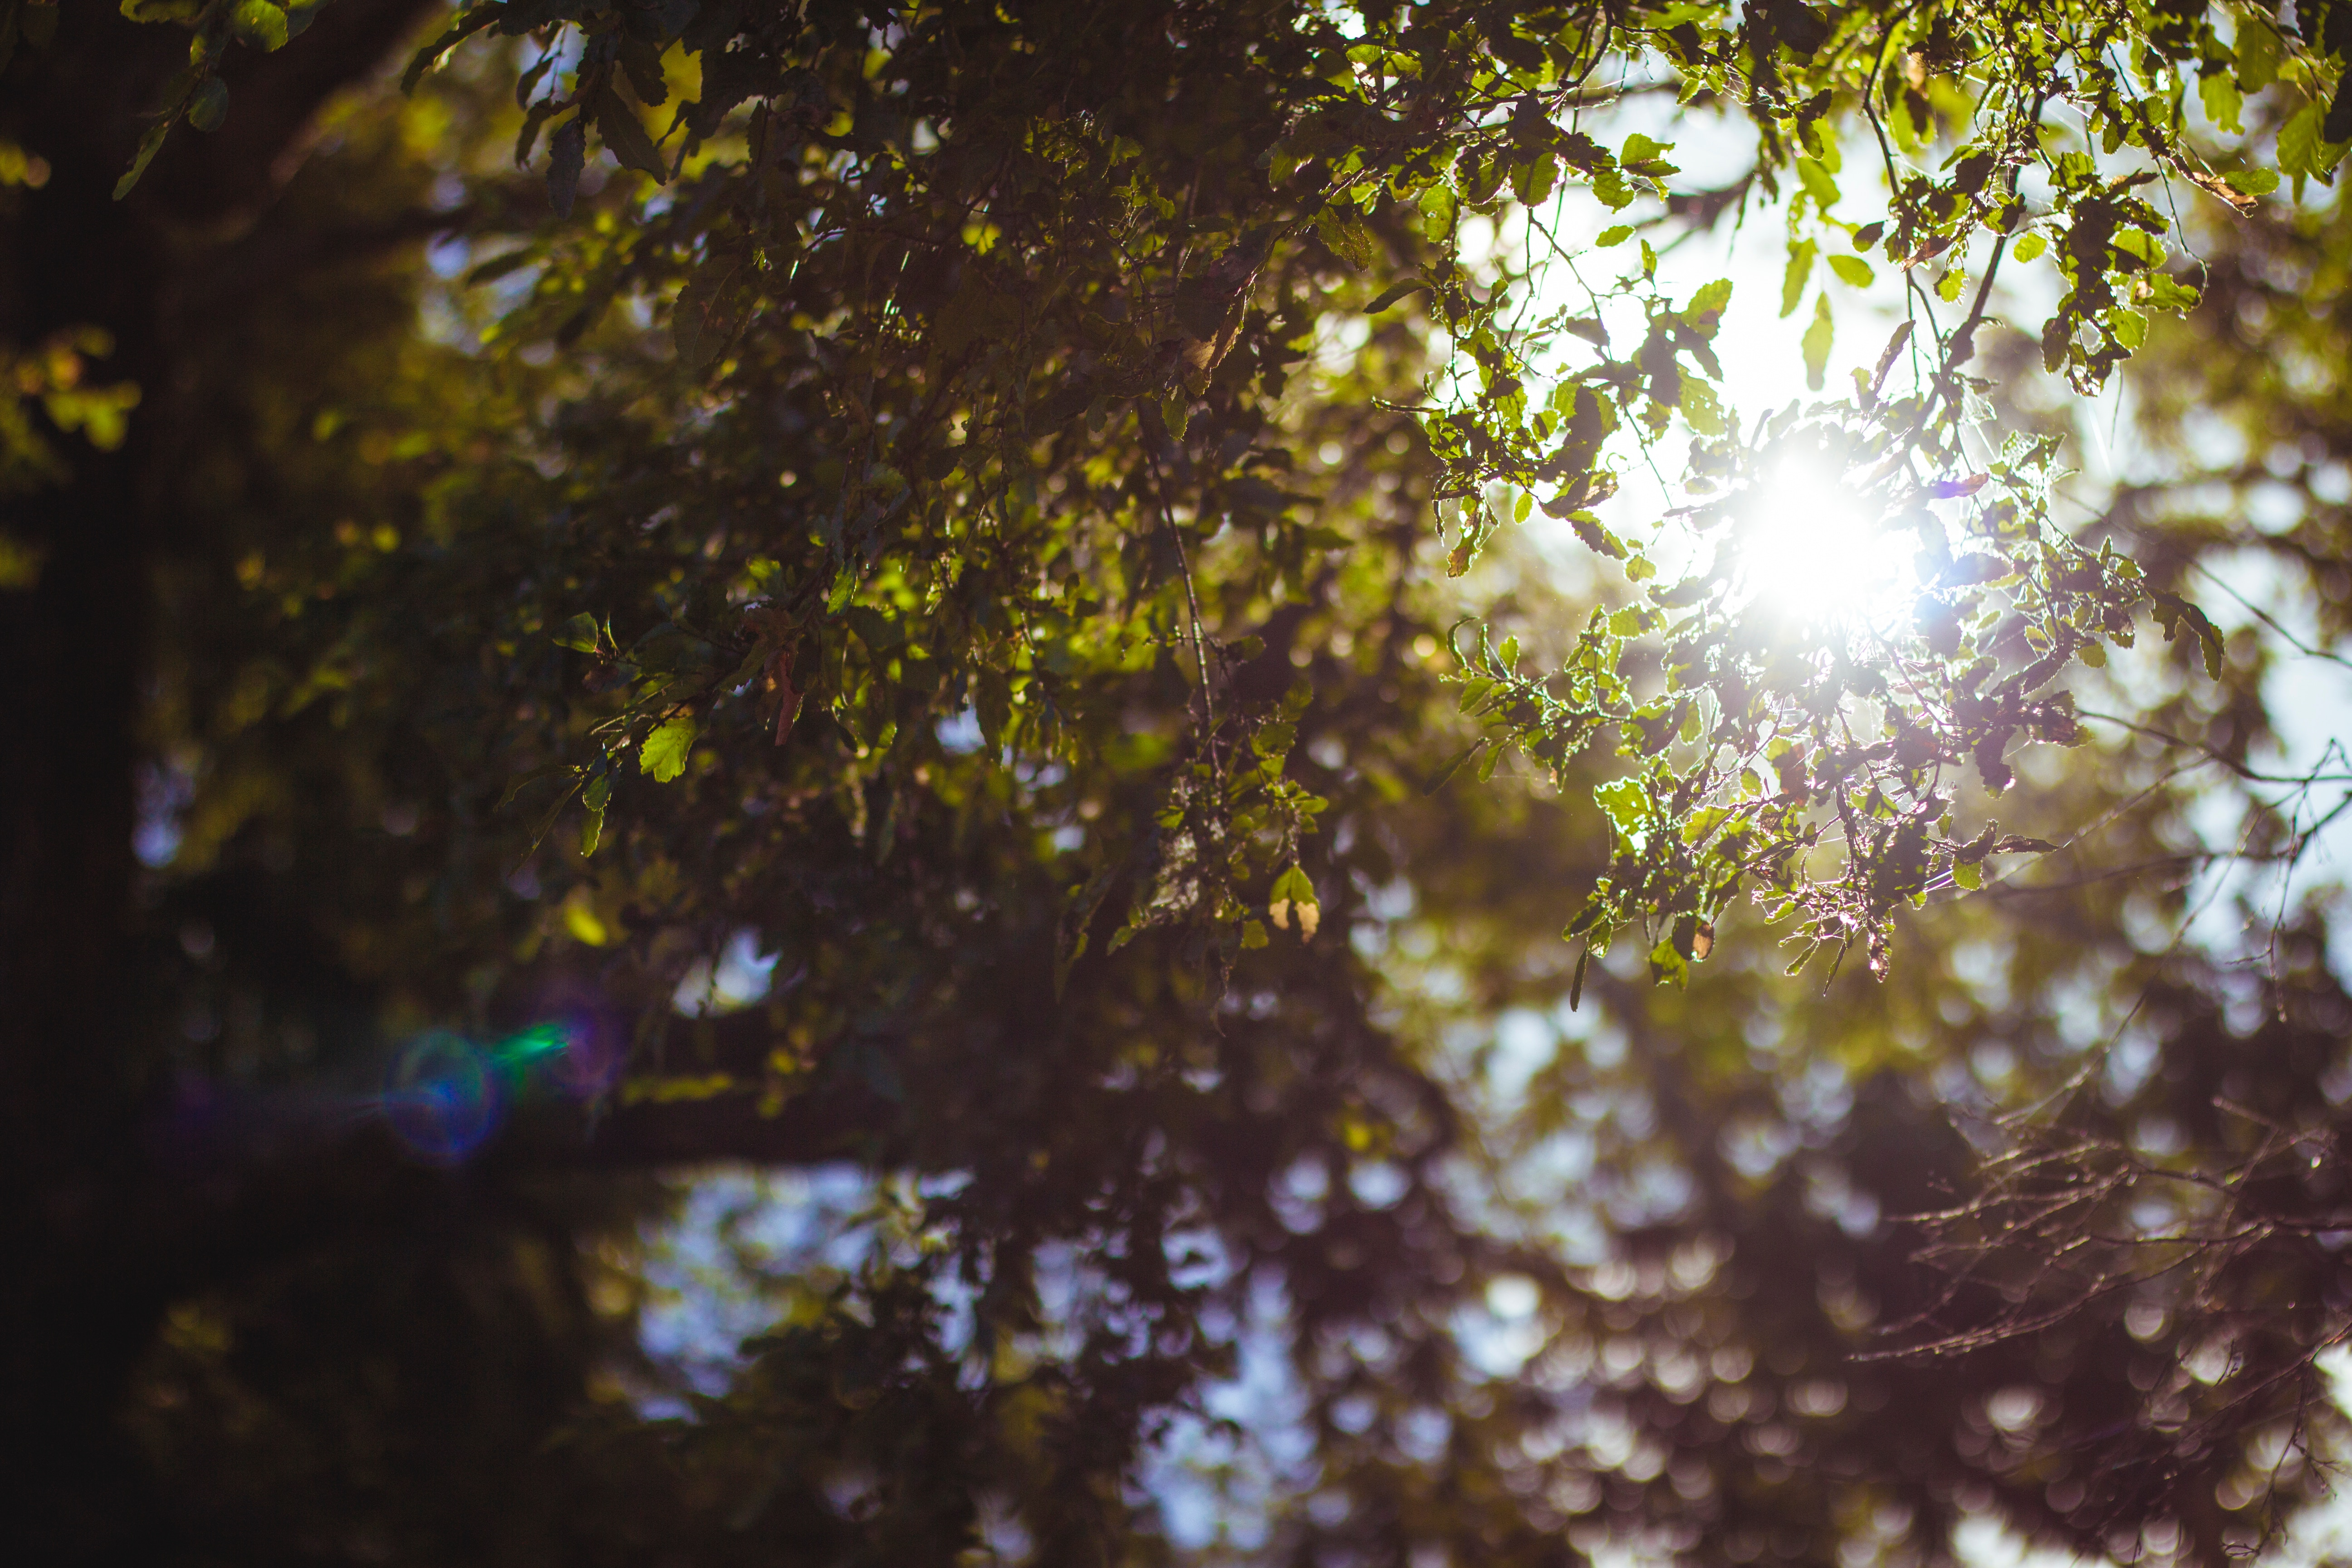 Leaves with sunlight streaming through